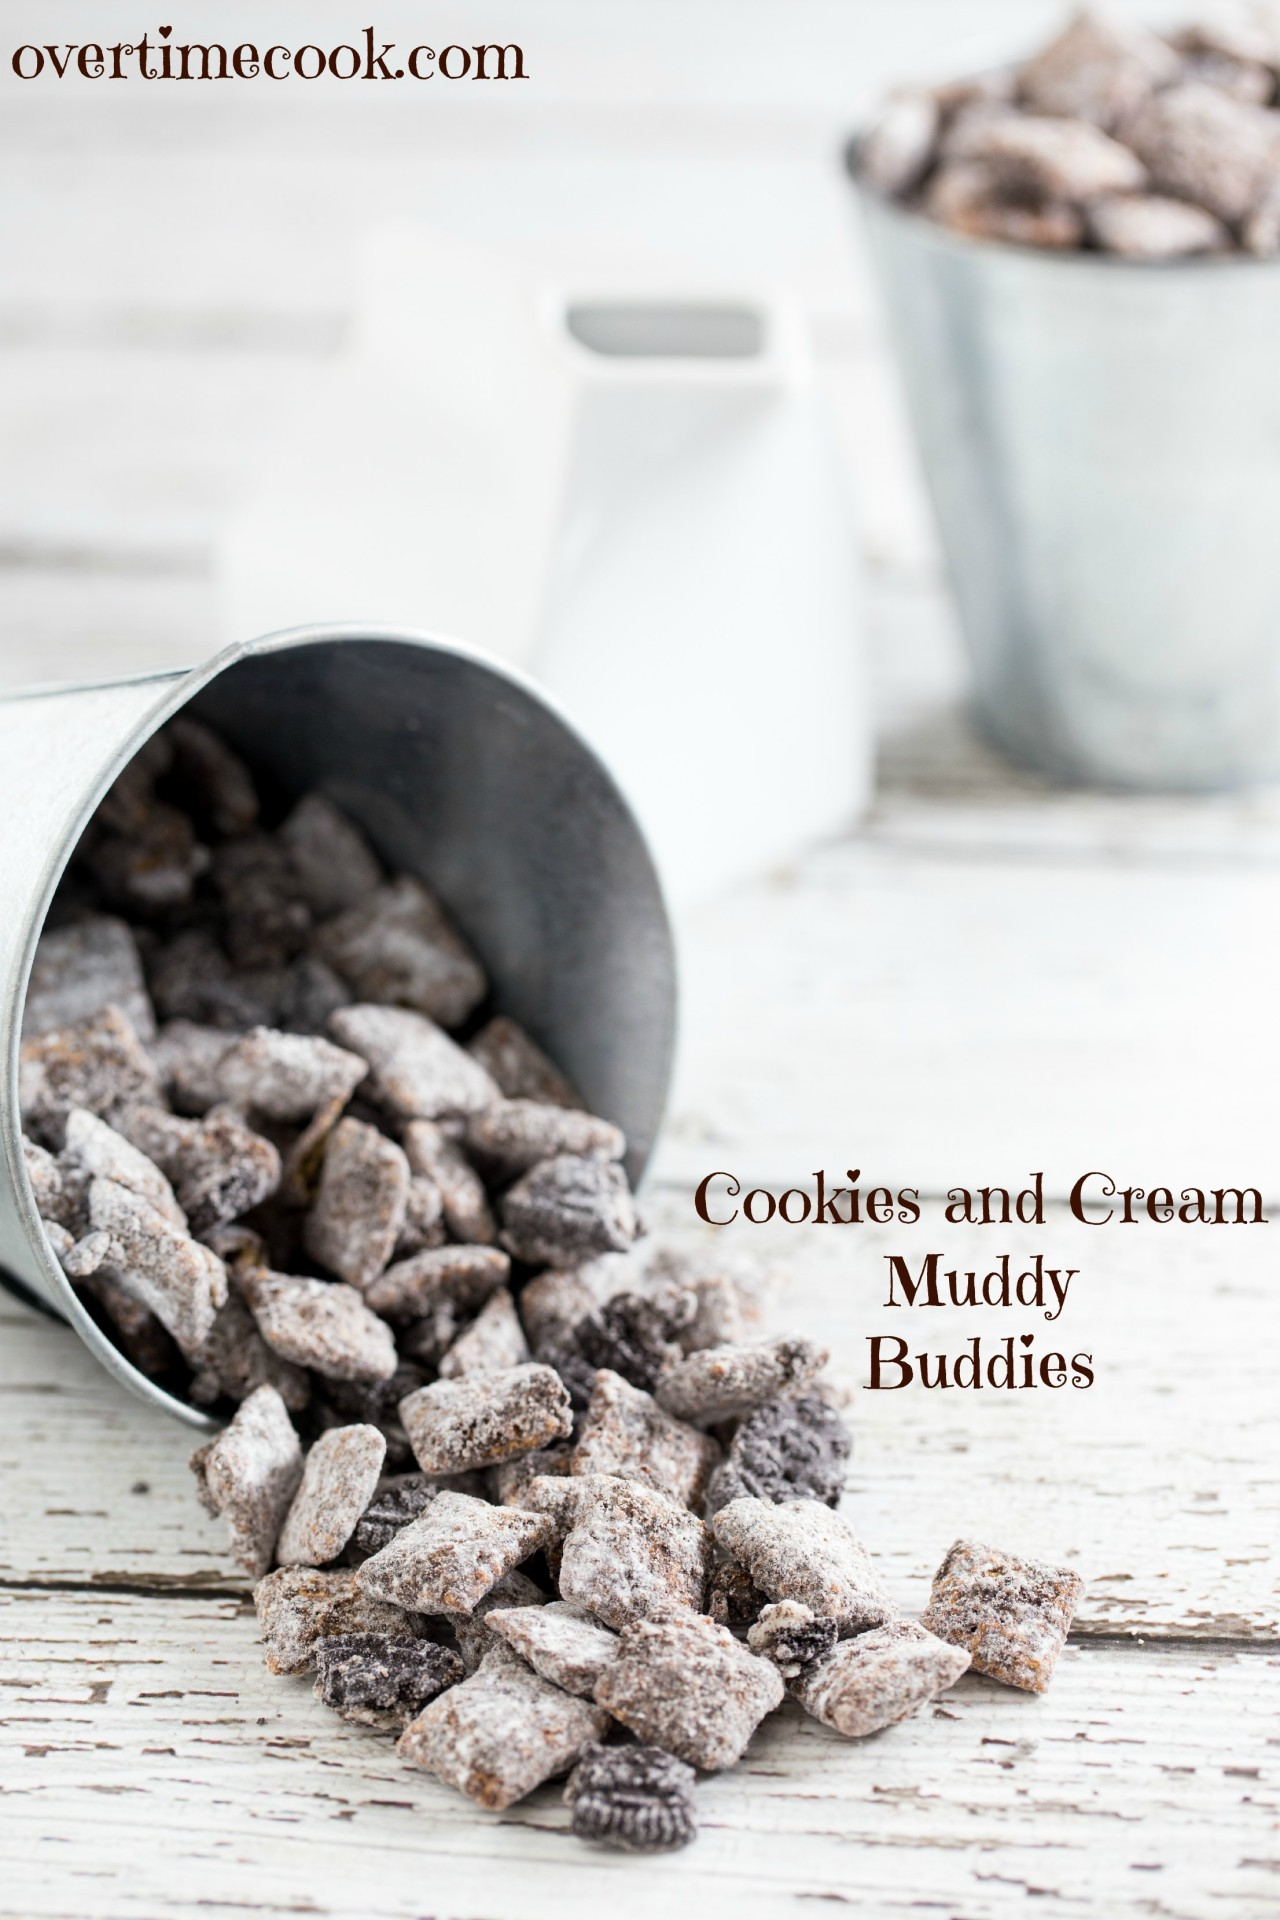 Cookies And Cream Muddy Buddies Overtime Cook